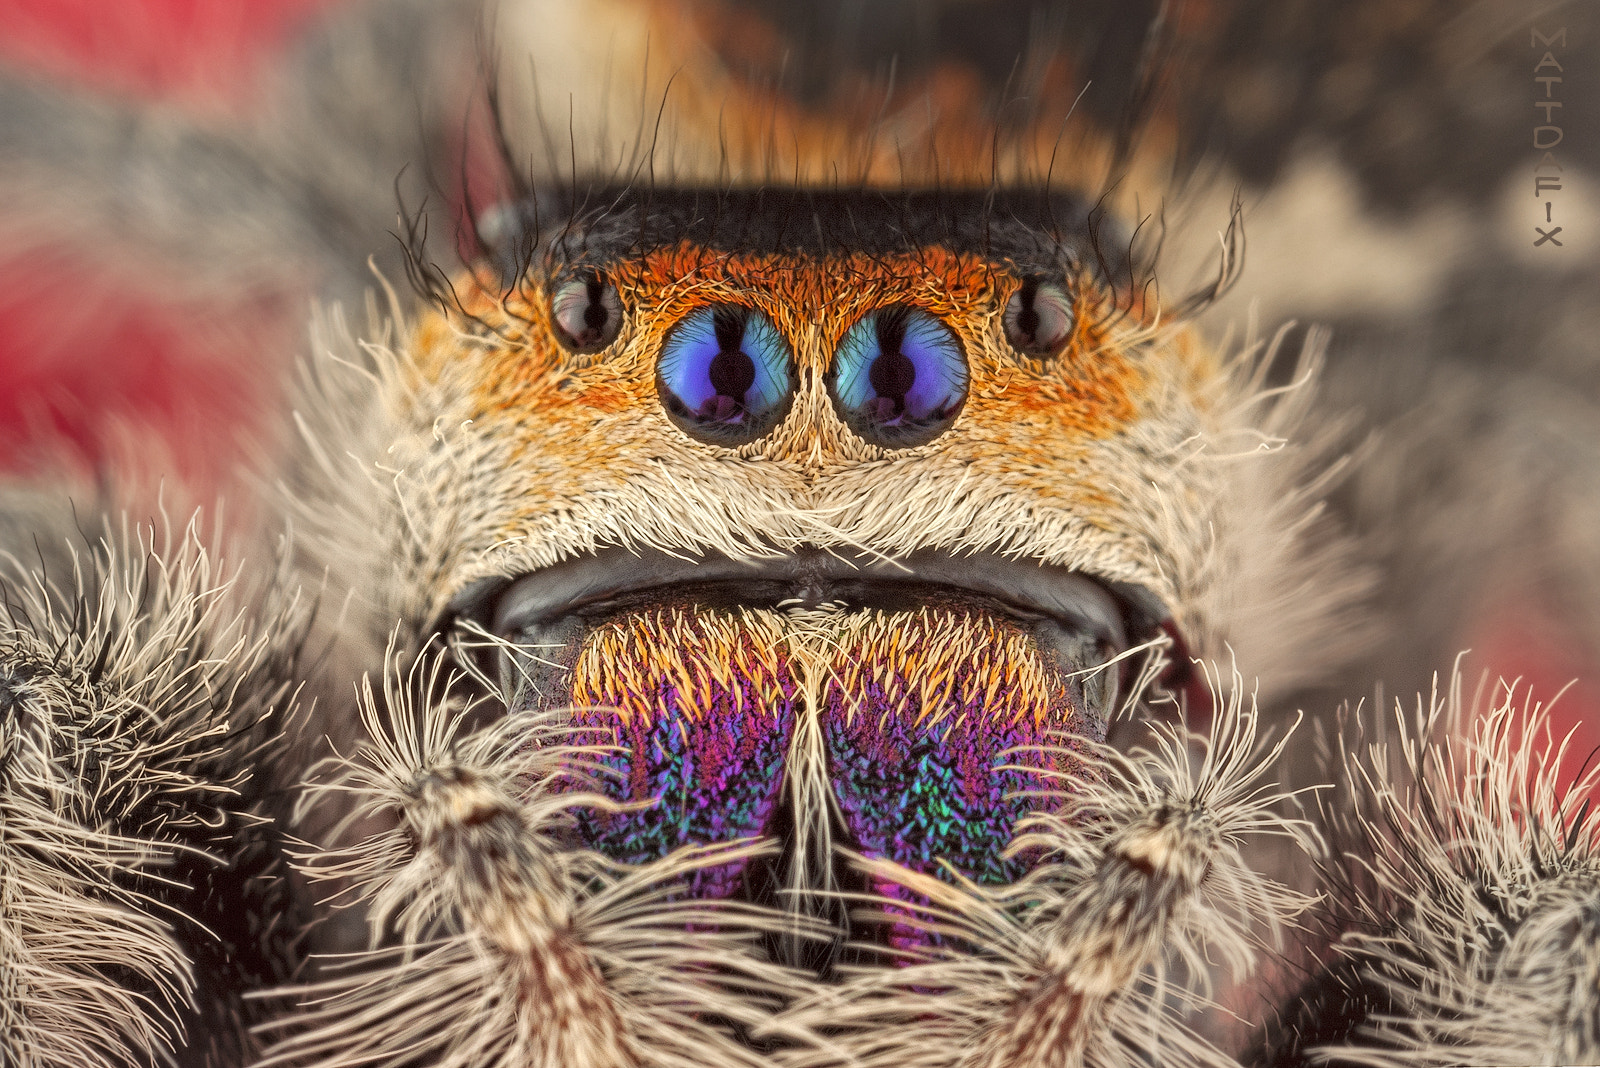 Photograph Regal Jumping Spider by Mateusz Znamierowski on 500px